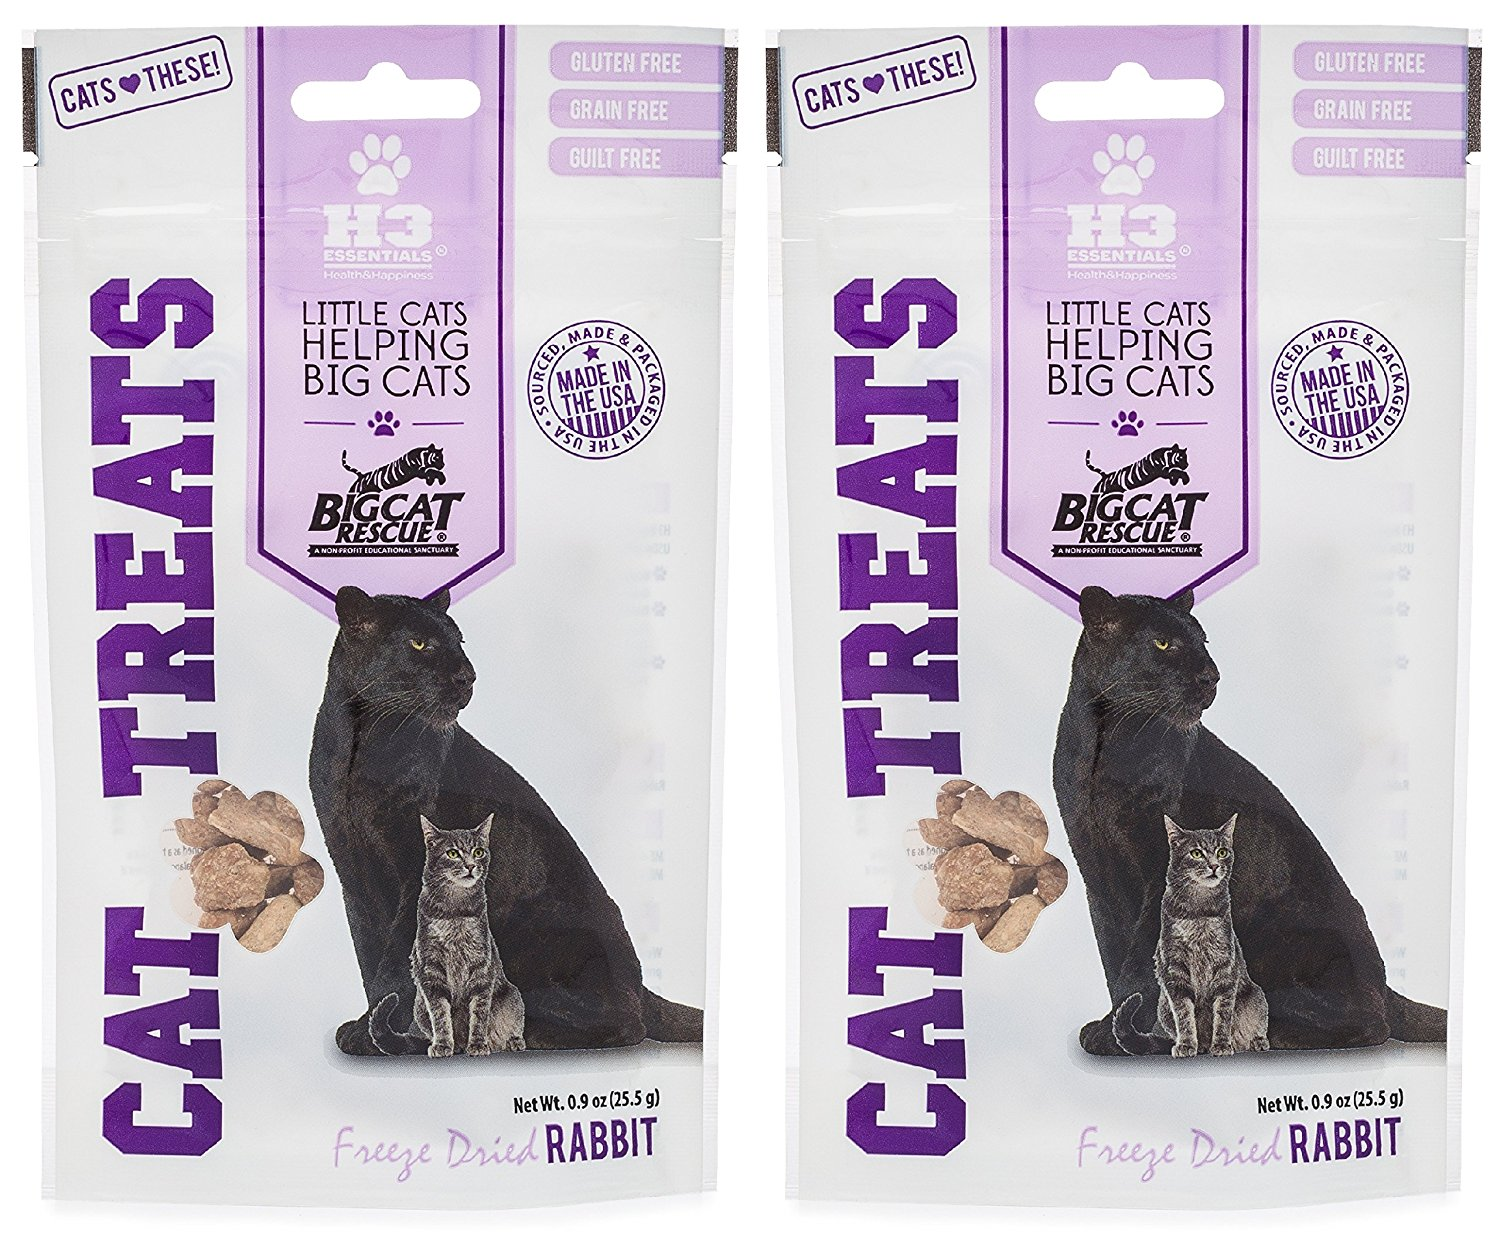 Big Cat Rescue Freeze Dried Rabbit Treats for Cats (2- .9oz packages) by H3 Essentials